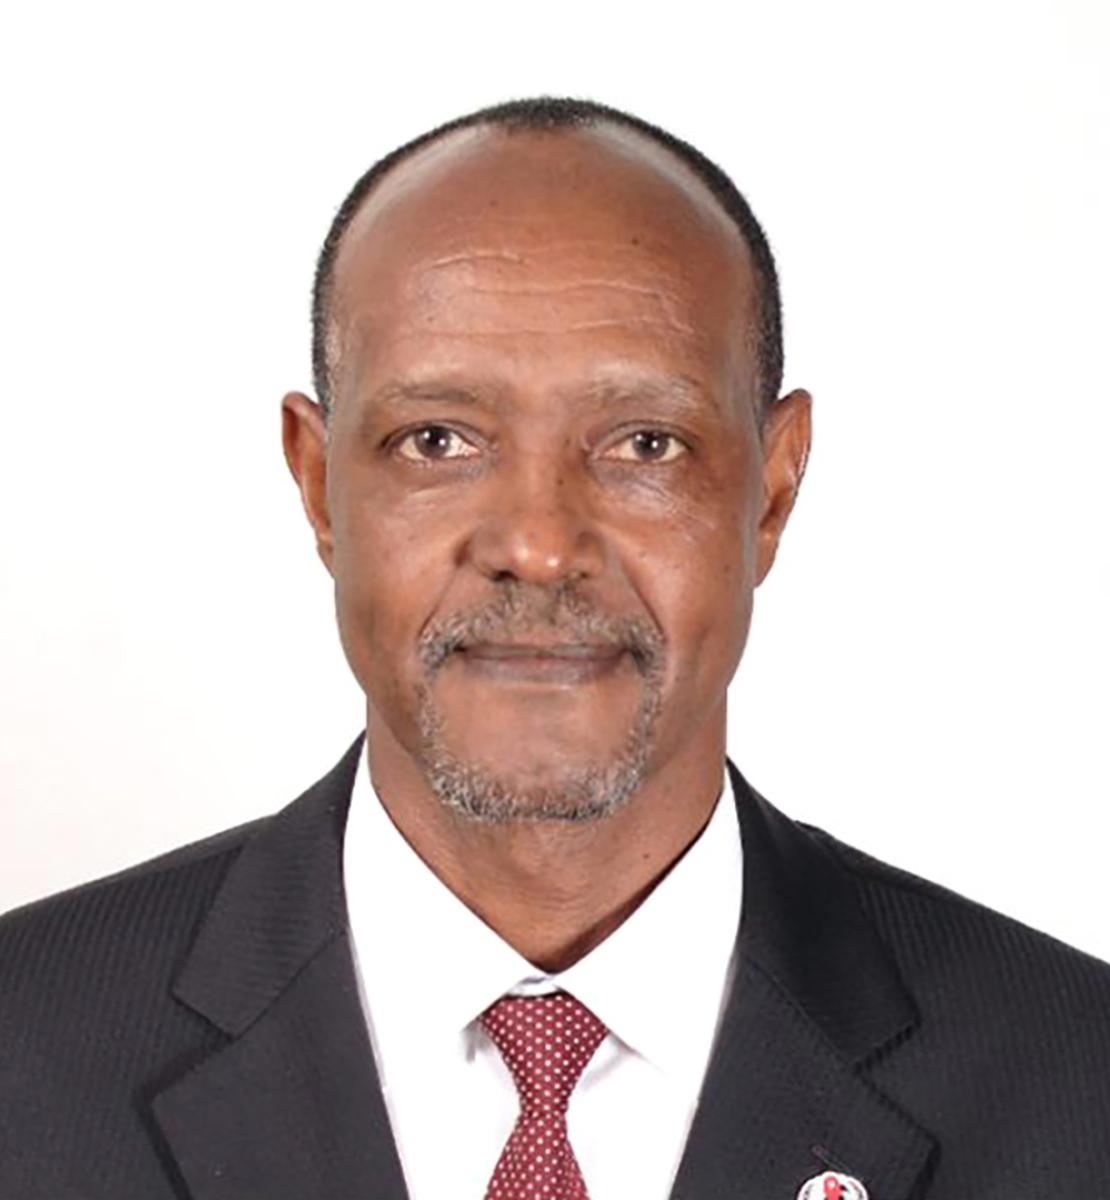 Official photo of the new appointed Resident Coordinator for Benin, Salvator Niyonzima.